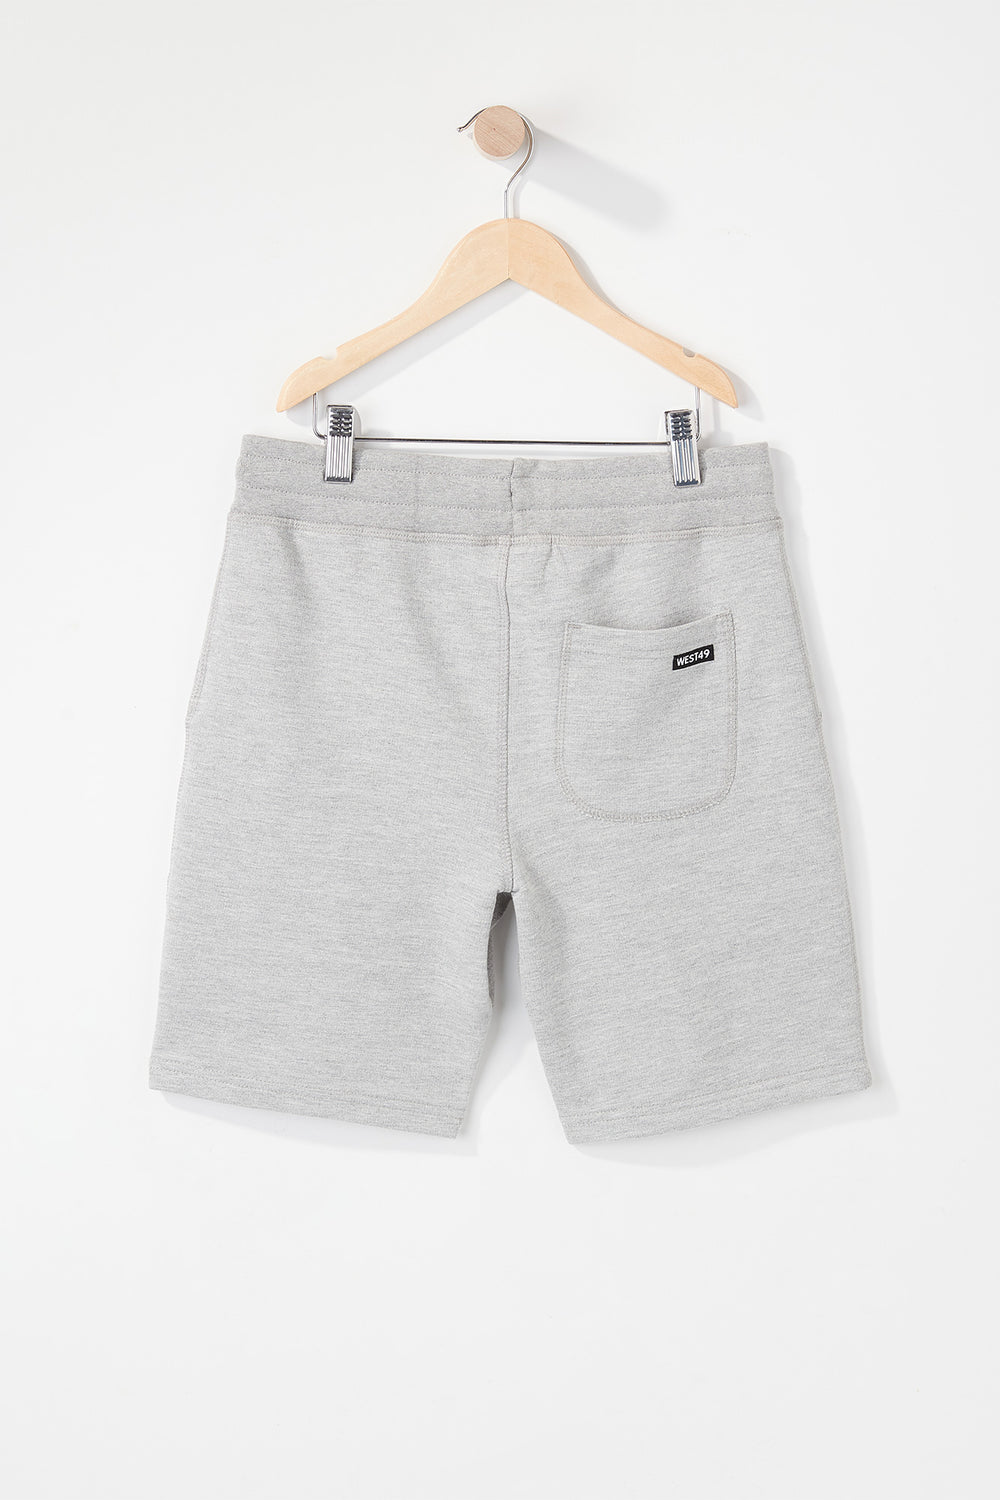 West49 Boys Basic Short Heather Grey